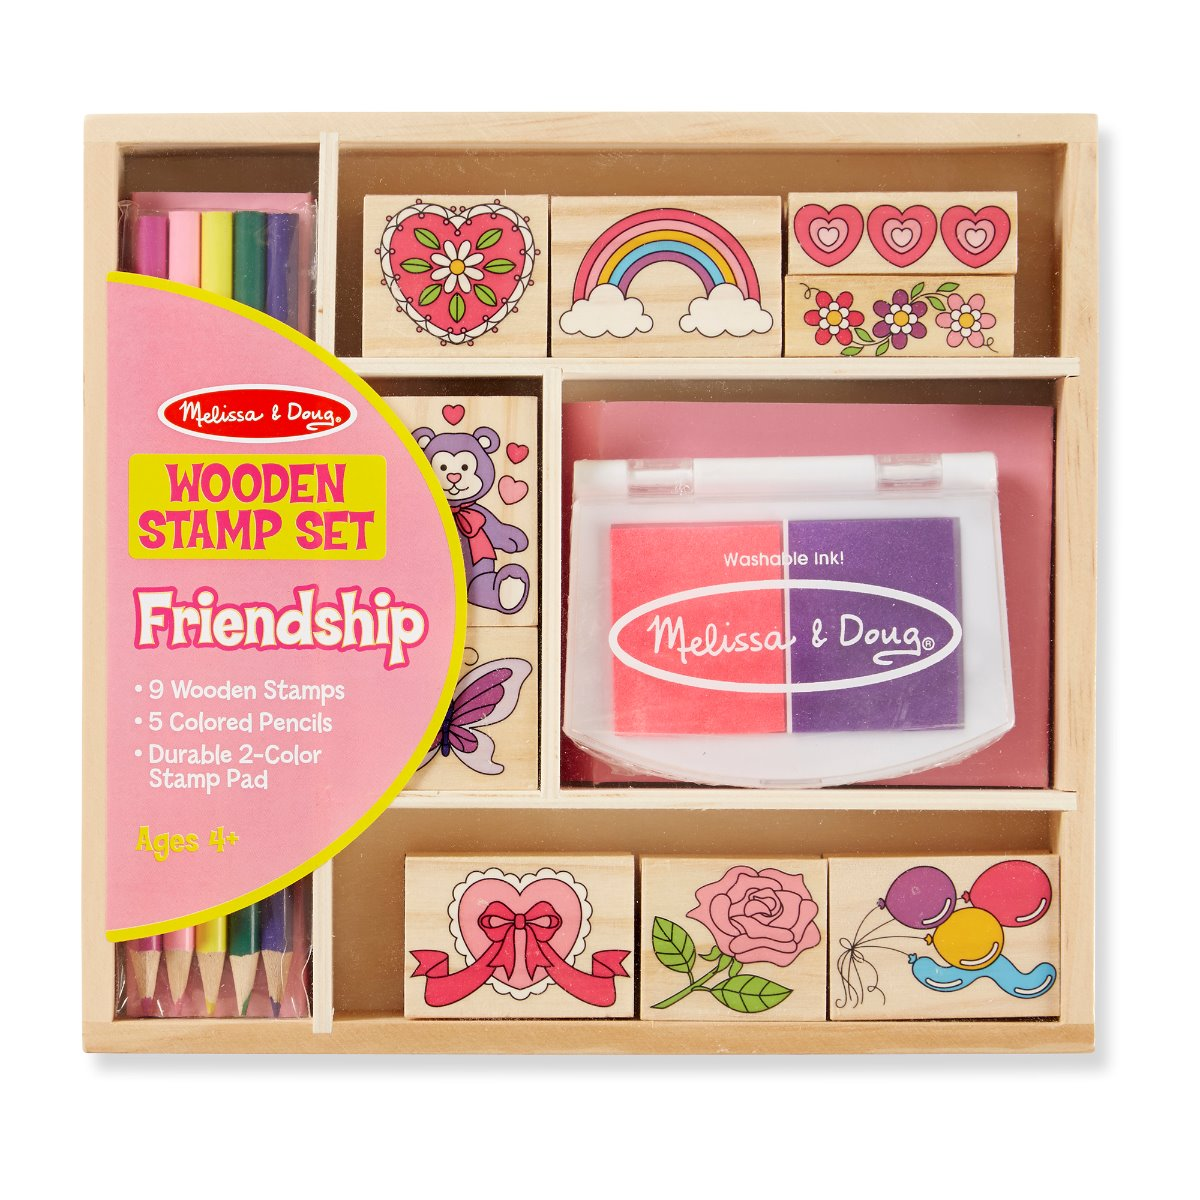 Melissa and Doug Wooden Stamp Set - Friendship